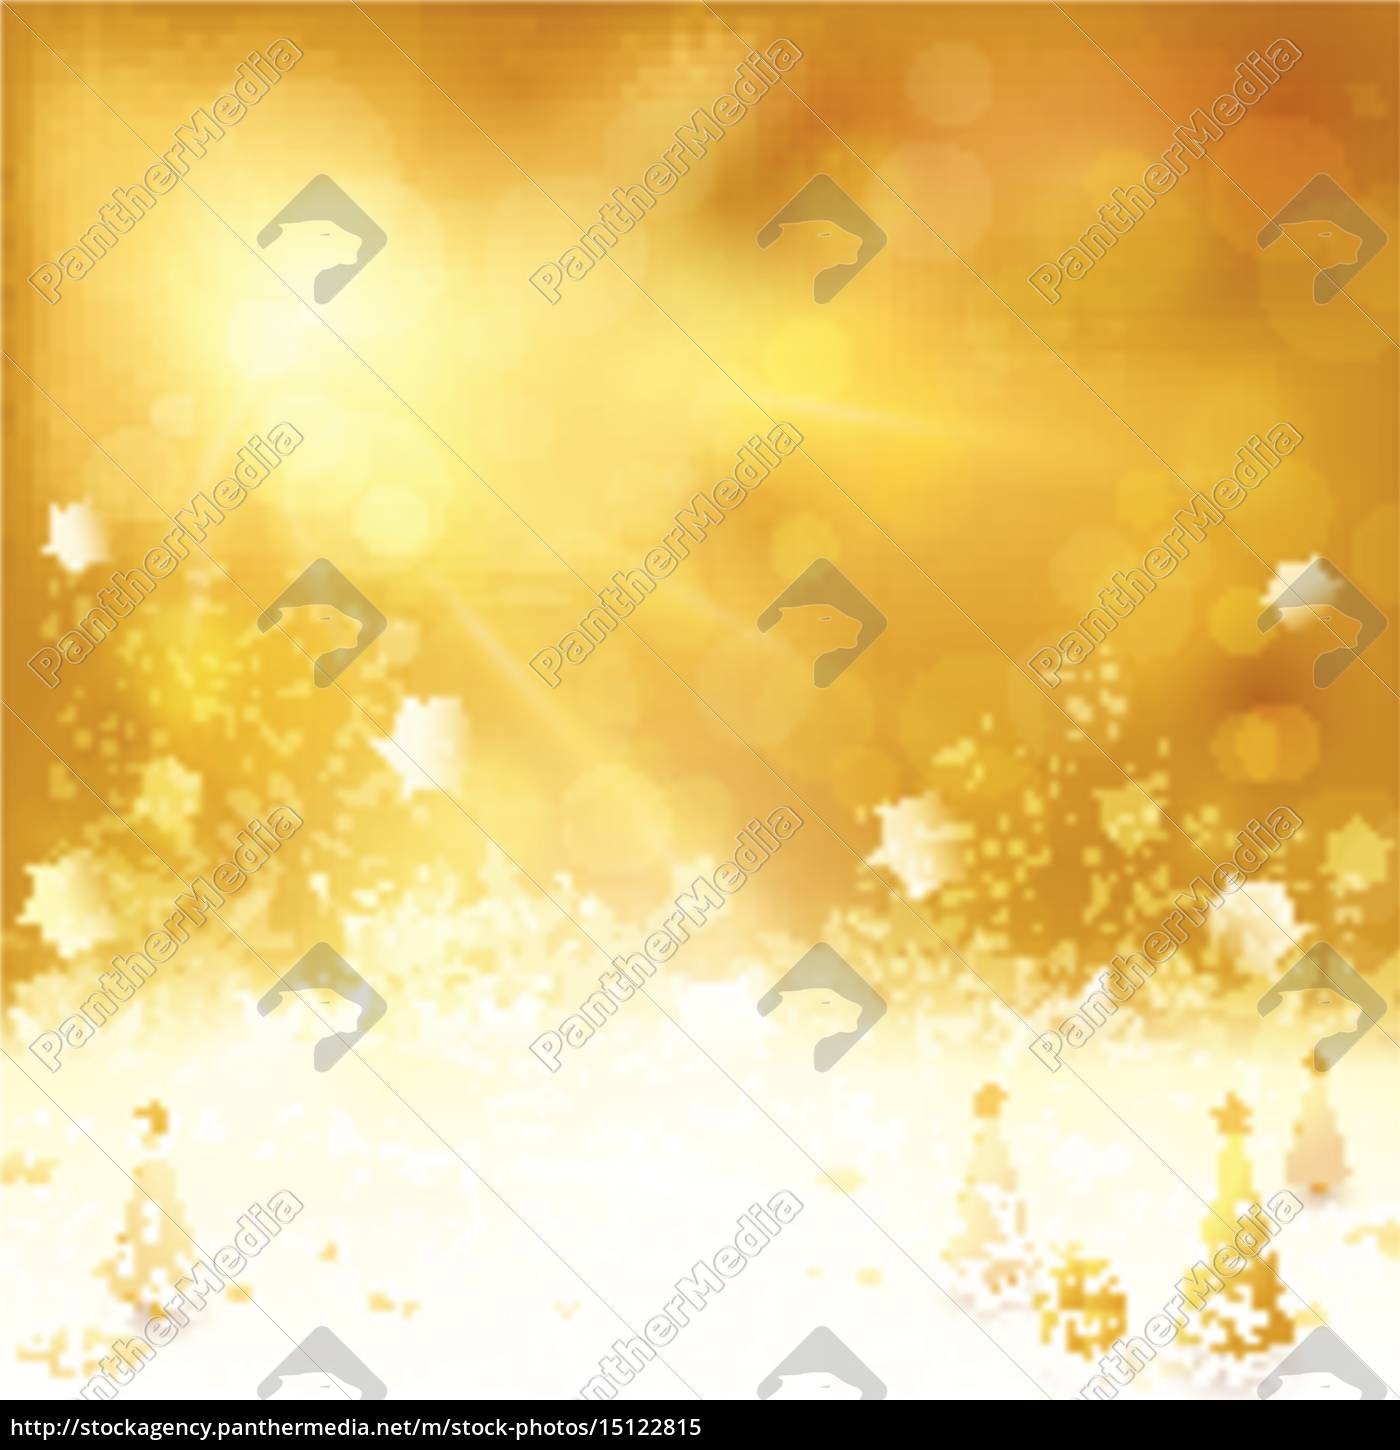 Christmas Background Images Gold.Royalty Free Vector 15122815 Golden Christmas Background With Christmas Tree And Present